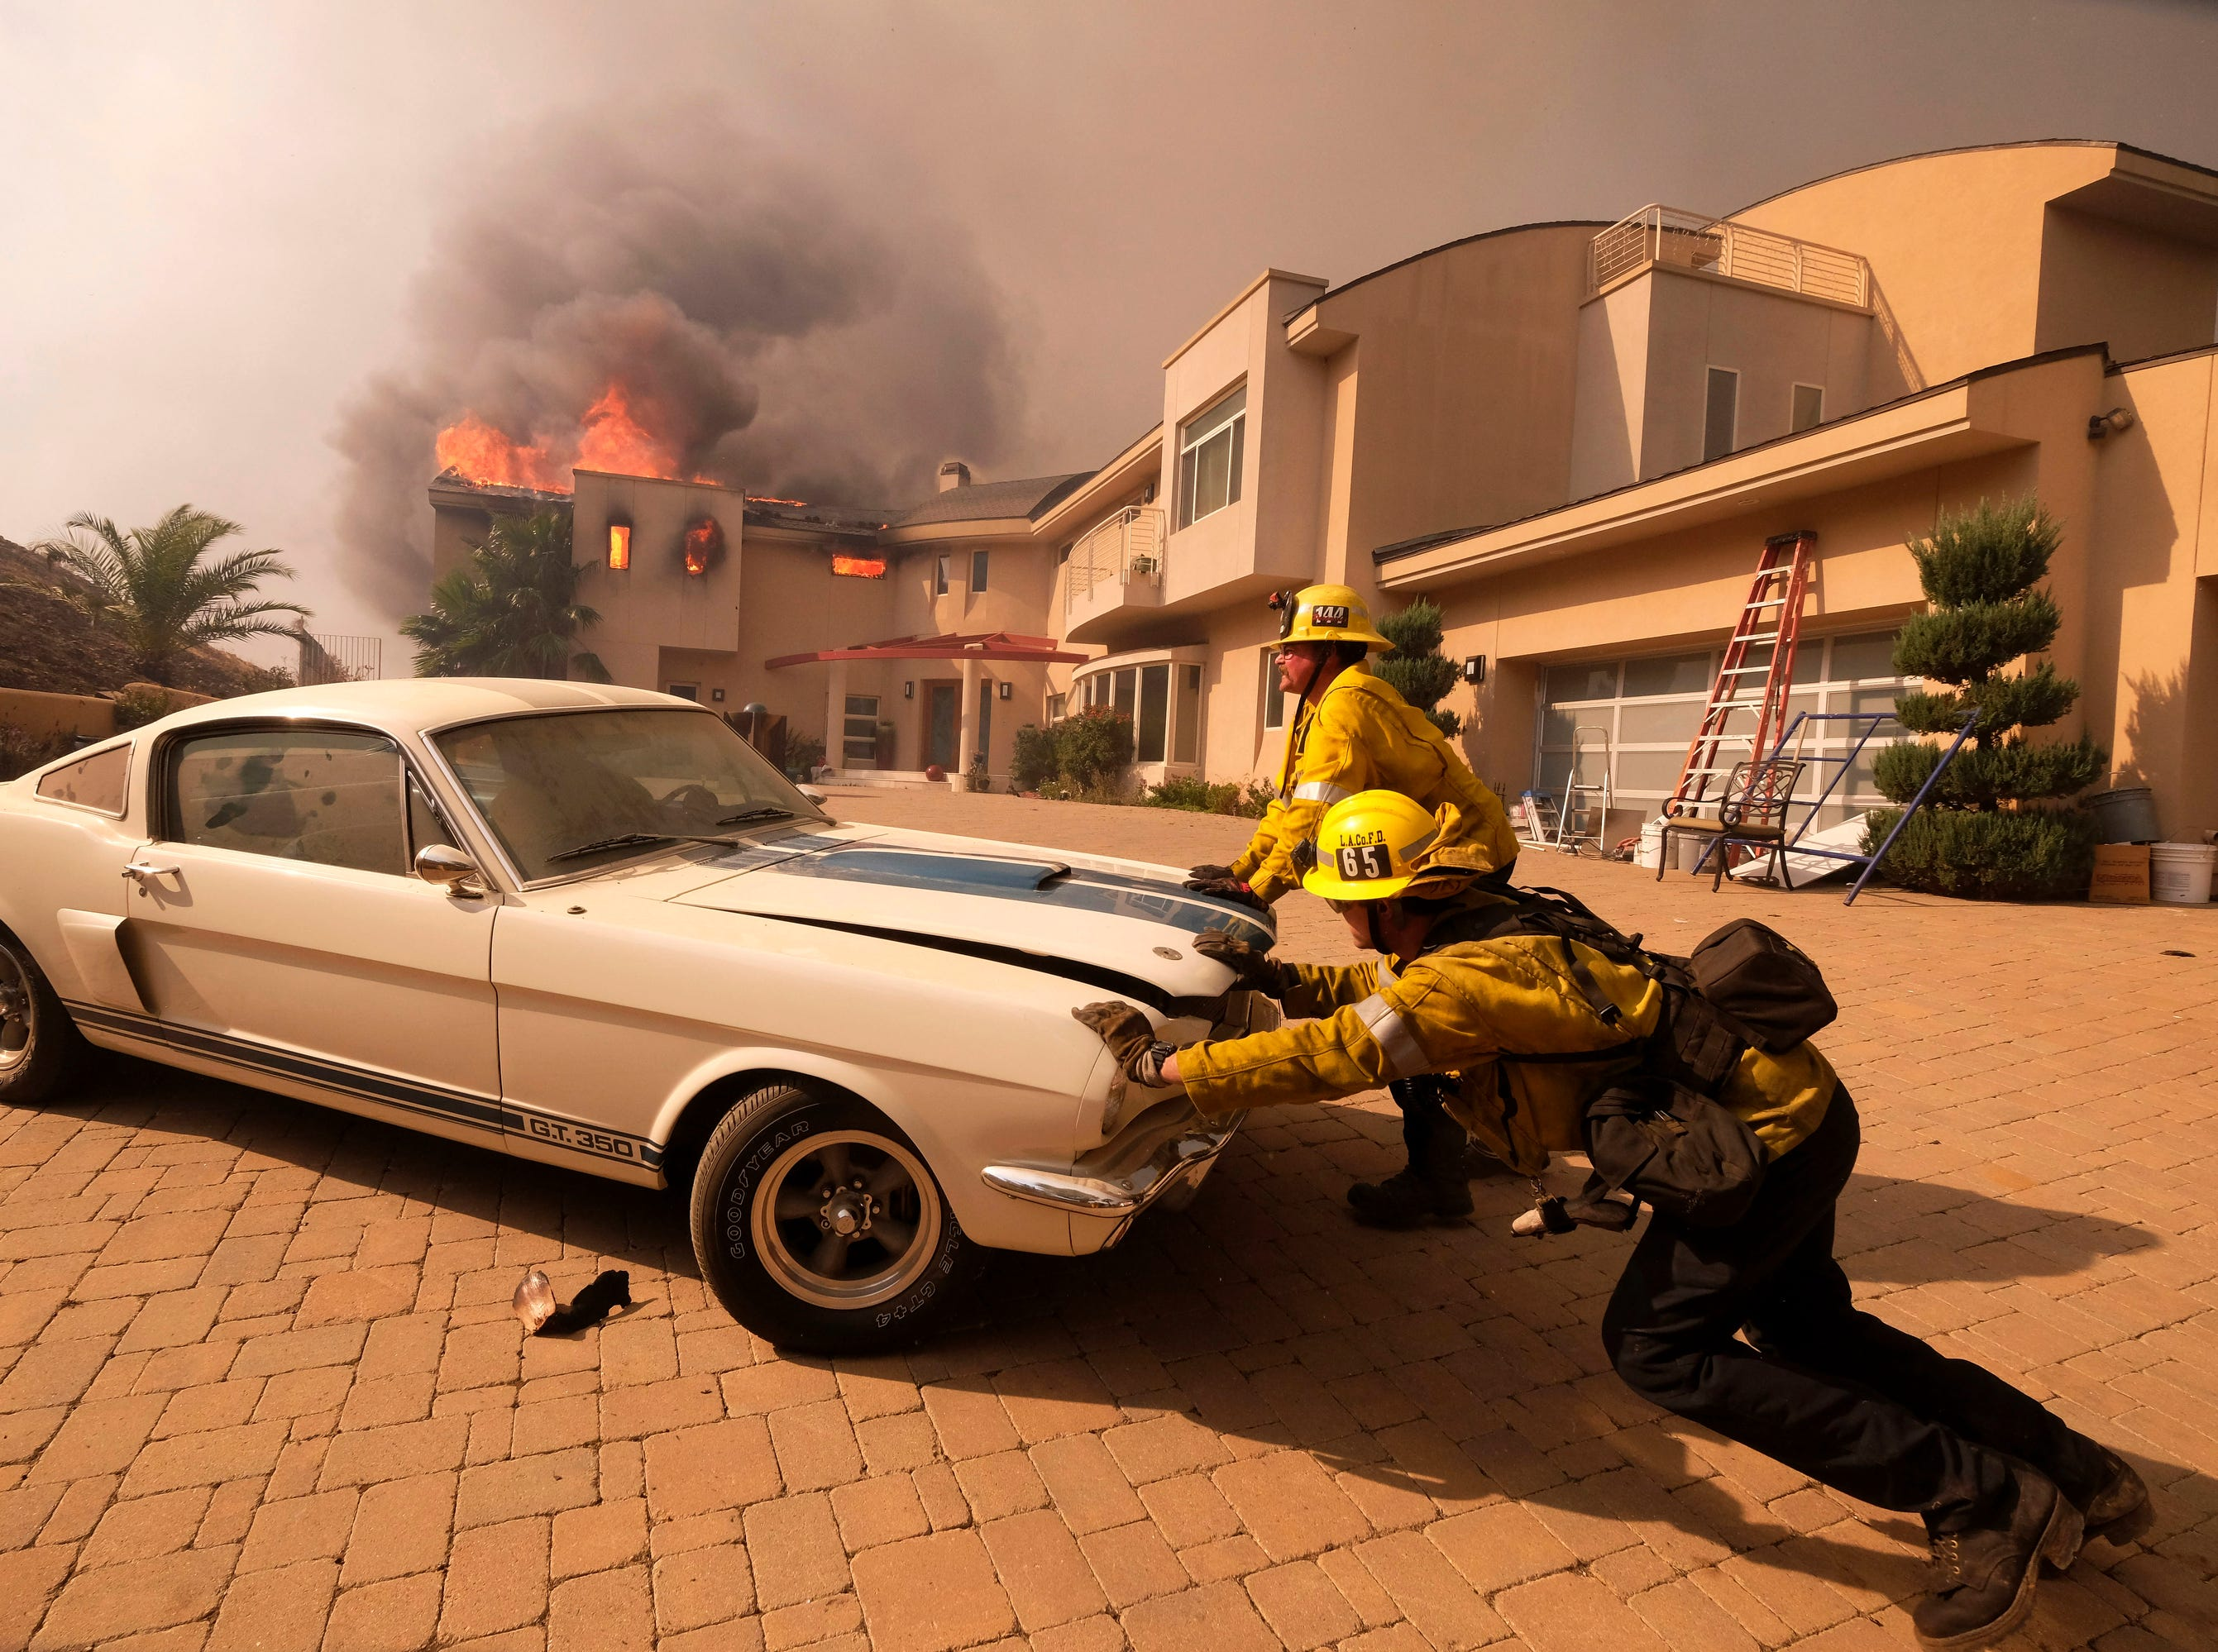 Firefighters push a vehicle from a garage as a wildfire fire burns a home near Malibu Lake in Malibu, Calif.